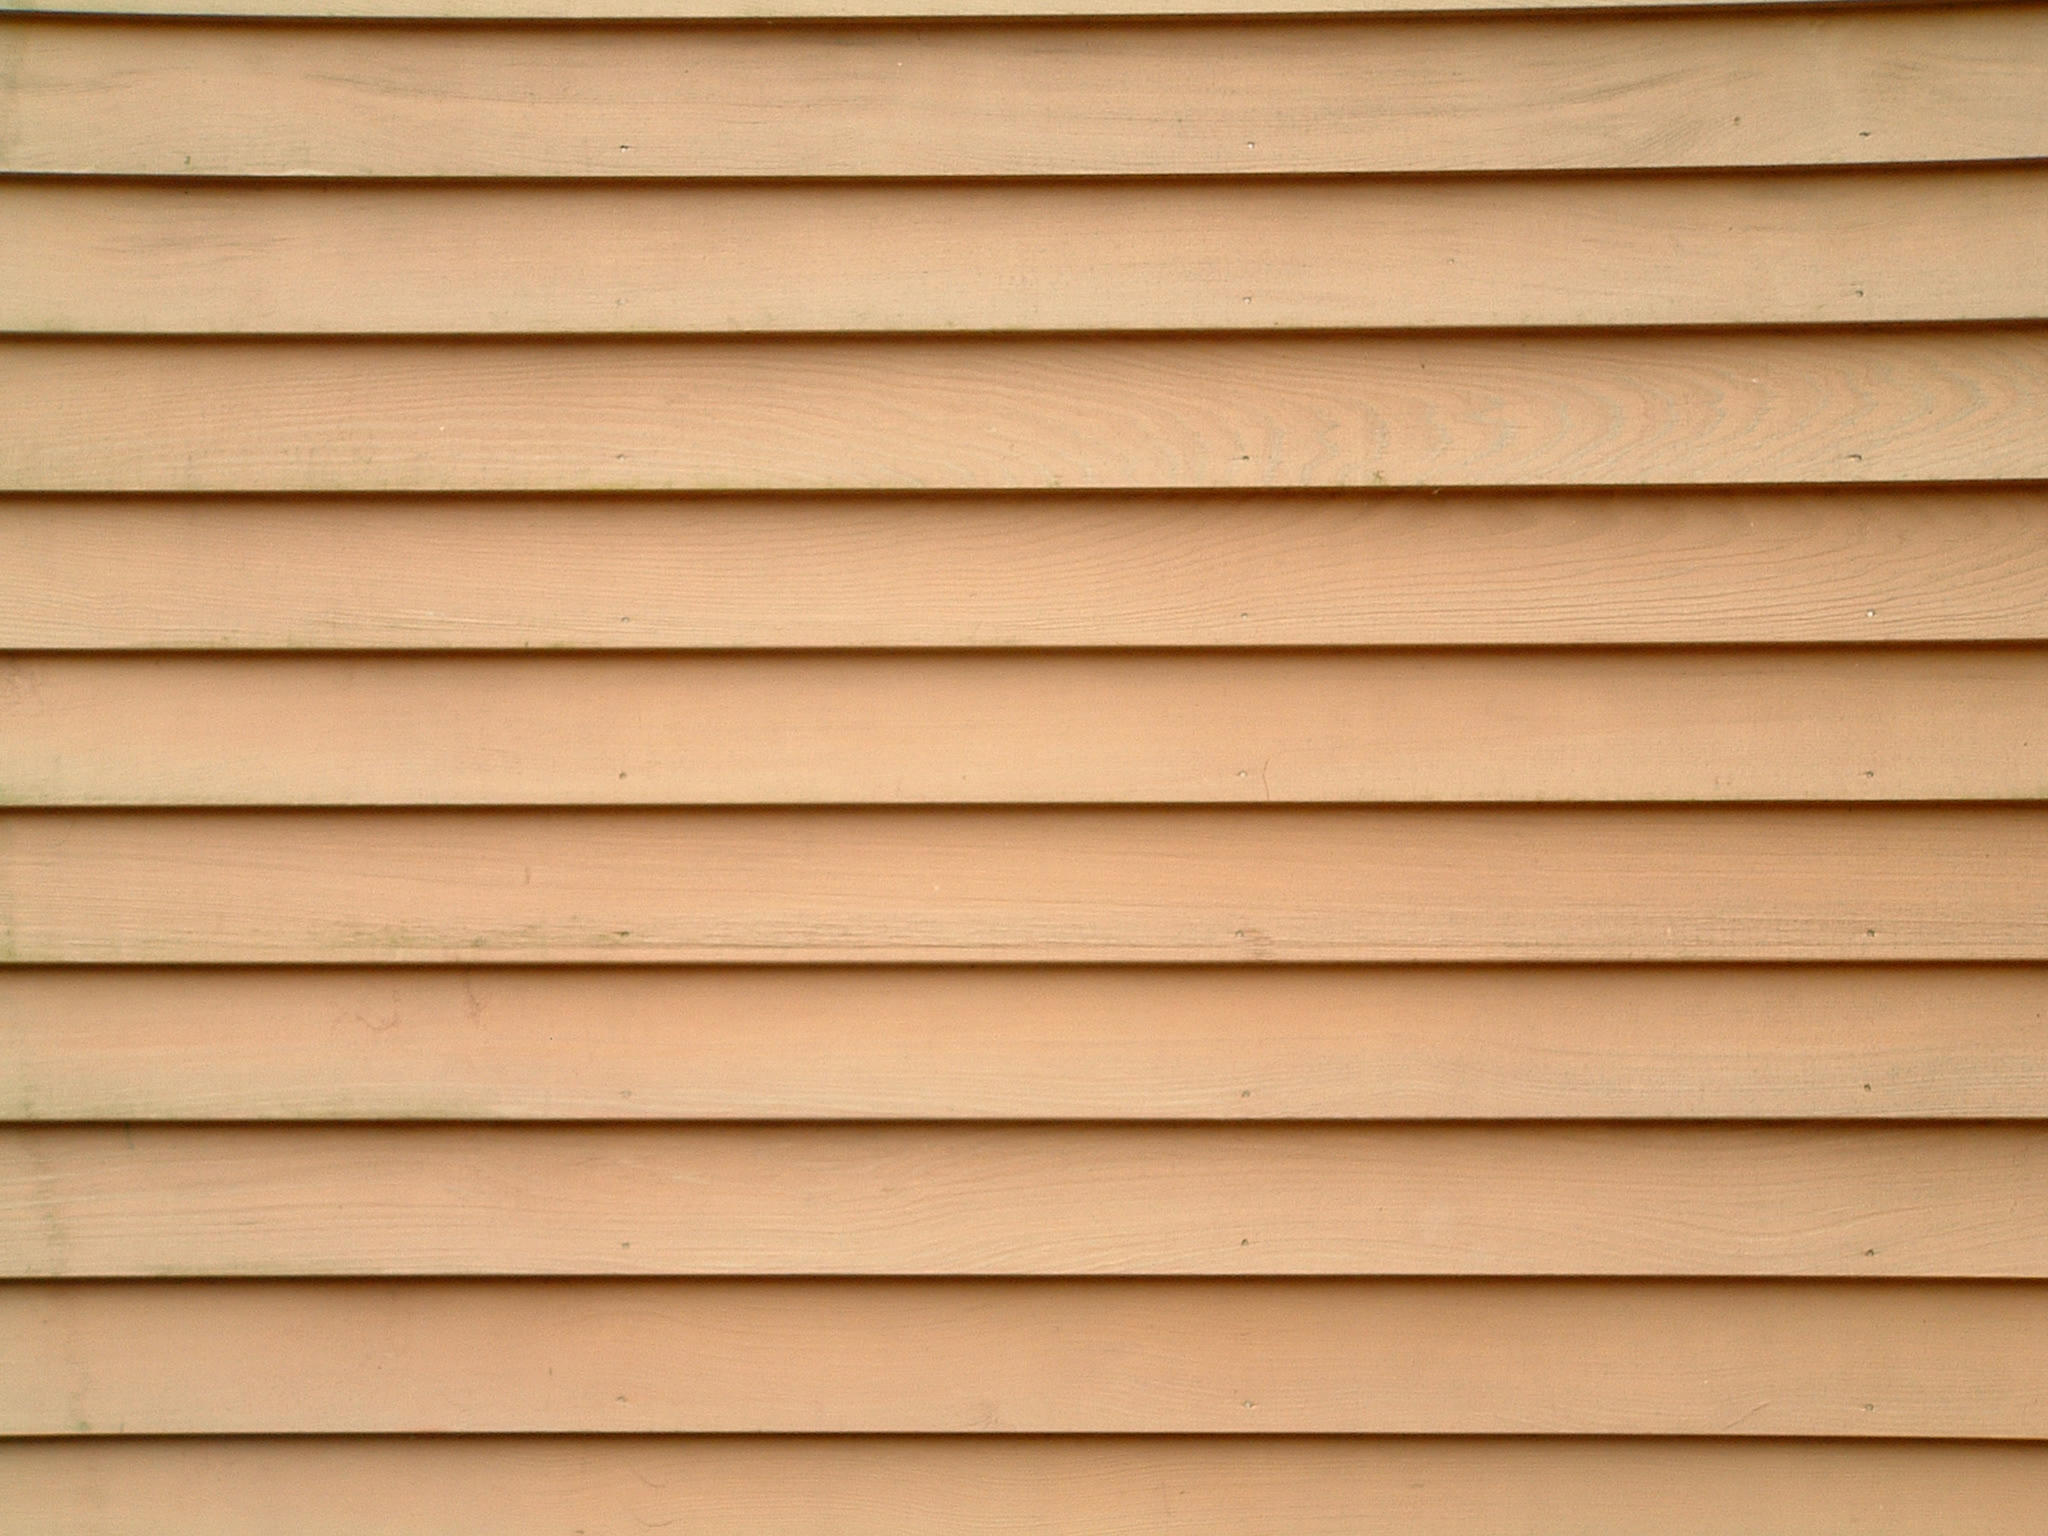 Wood siding 01 by n gon stock on deviantart for Horizontal wood siding